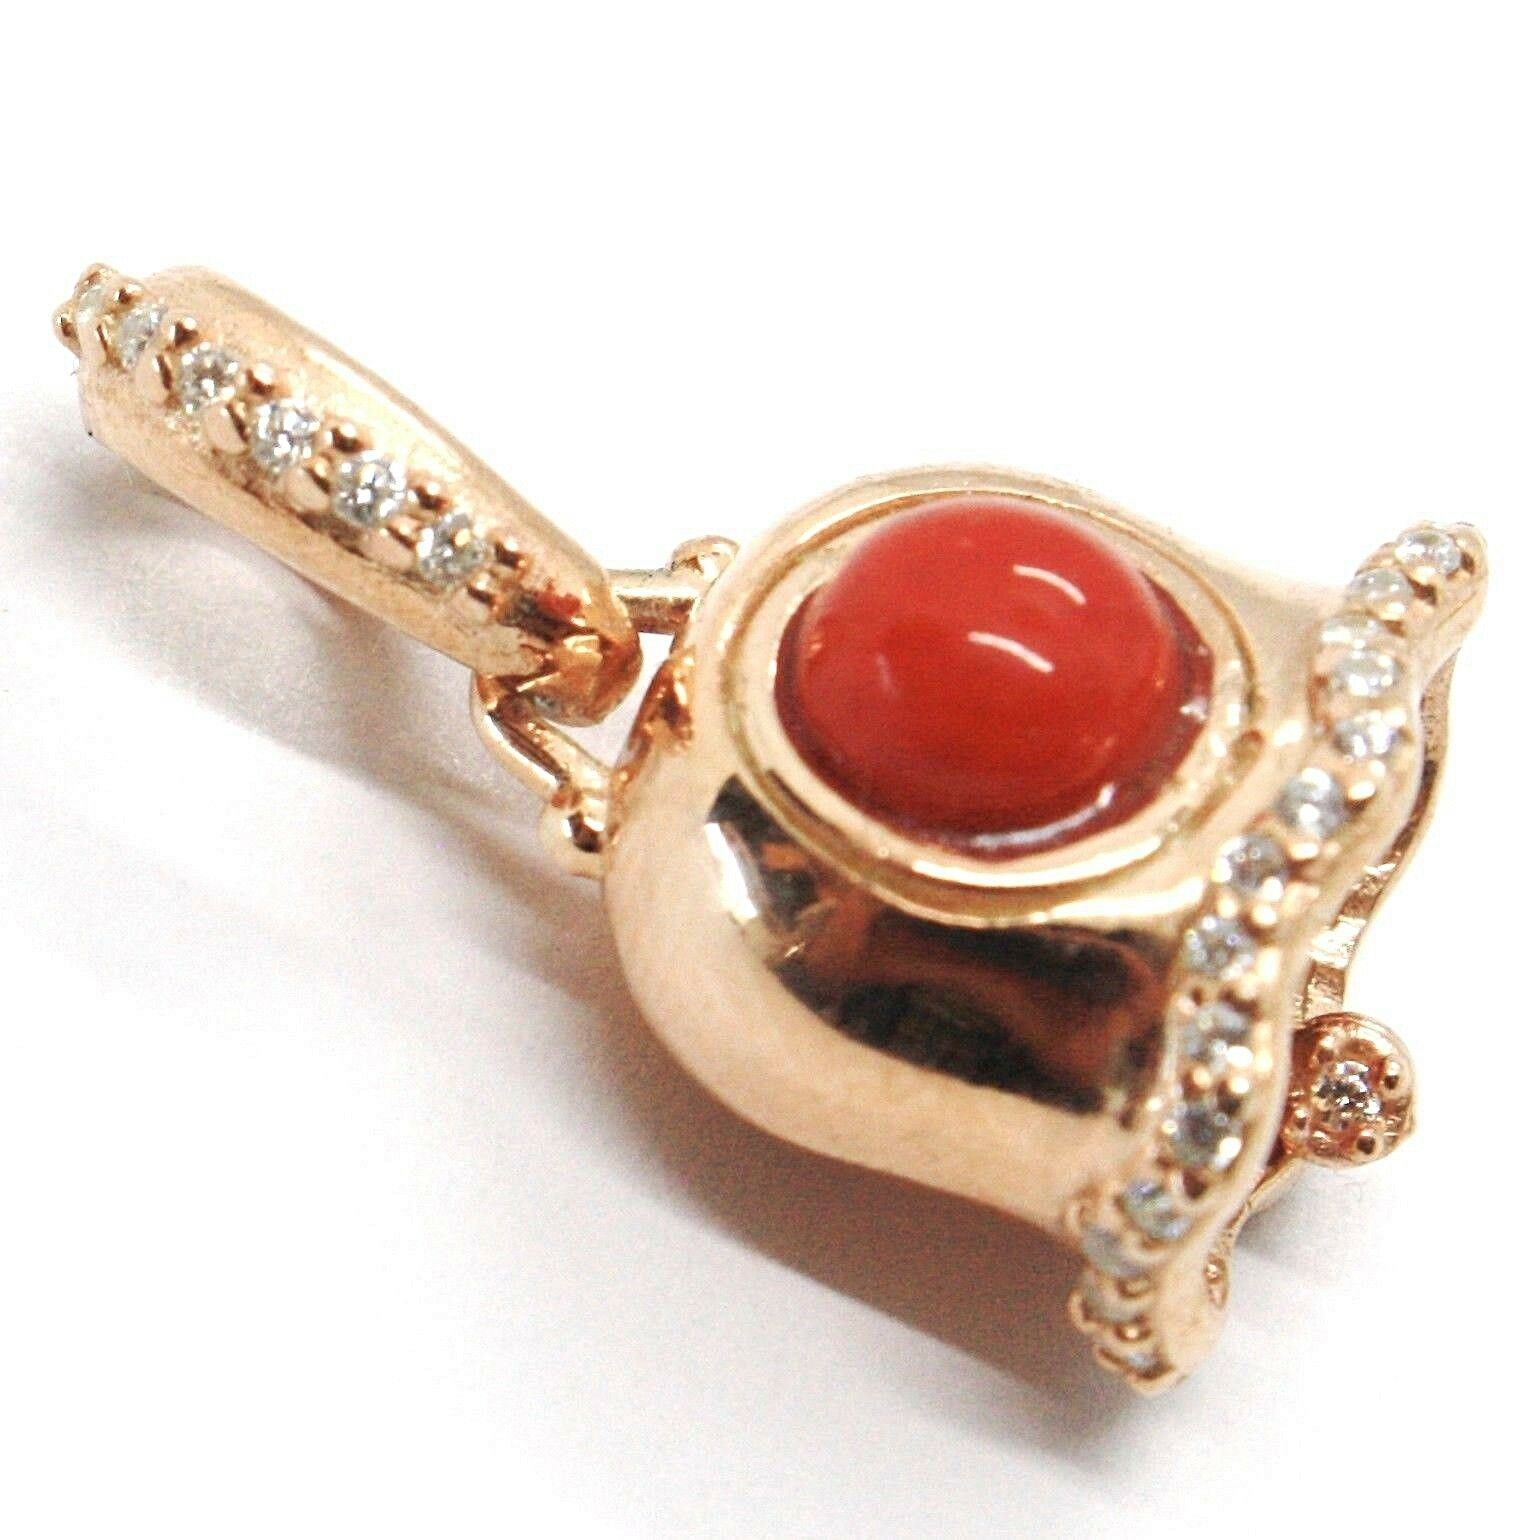 Silver Pendant 925, Little Bell, Bell with Zircon, Coral, Pendant